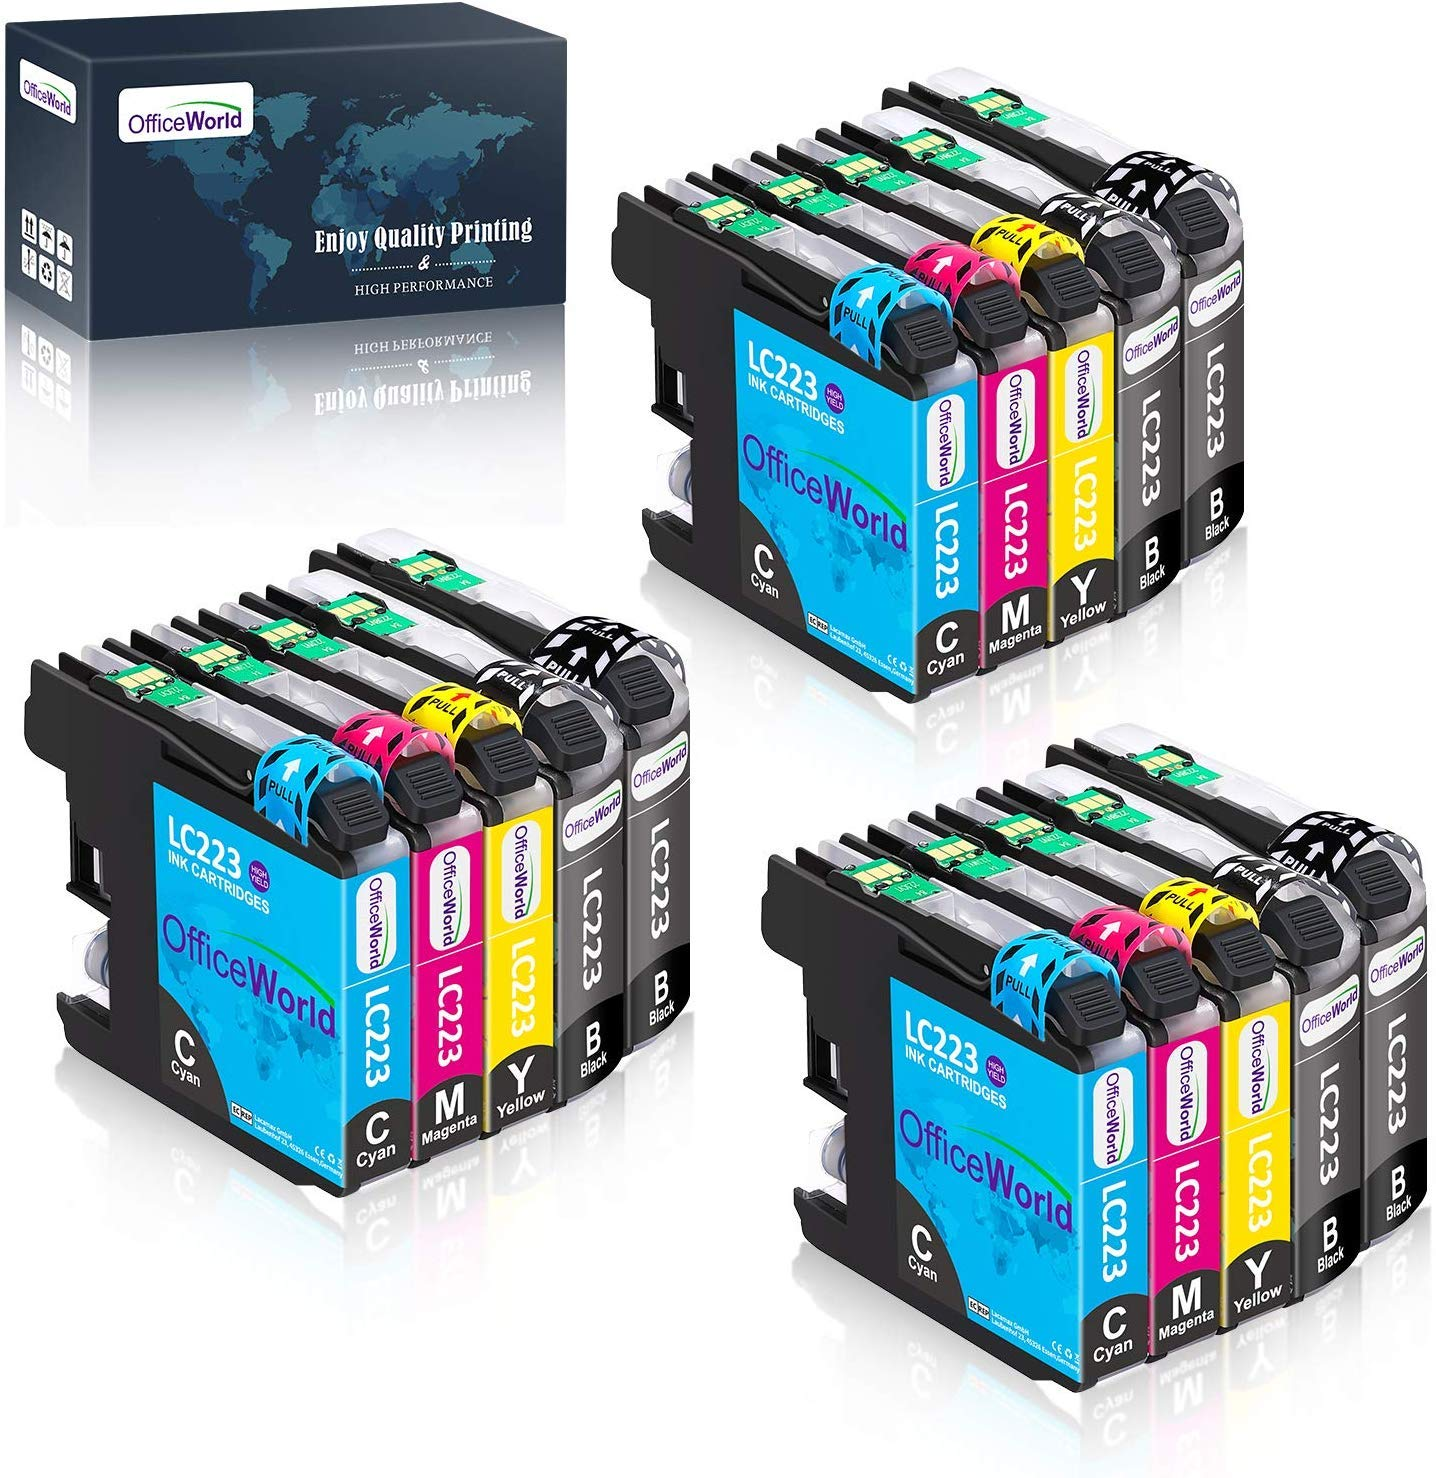 OfficeWorld Reemplazo para Brother LC223 Cartuchos de tinta ...